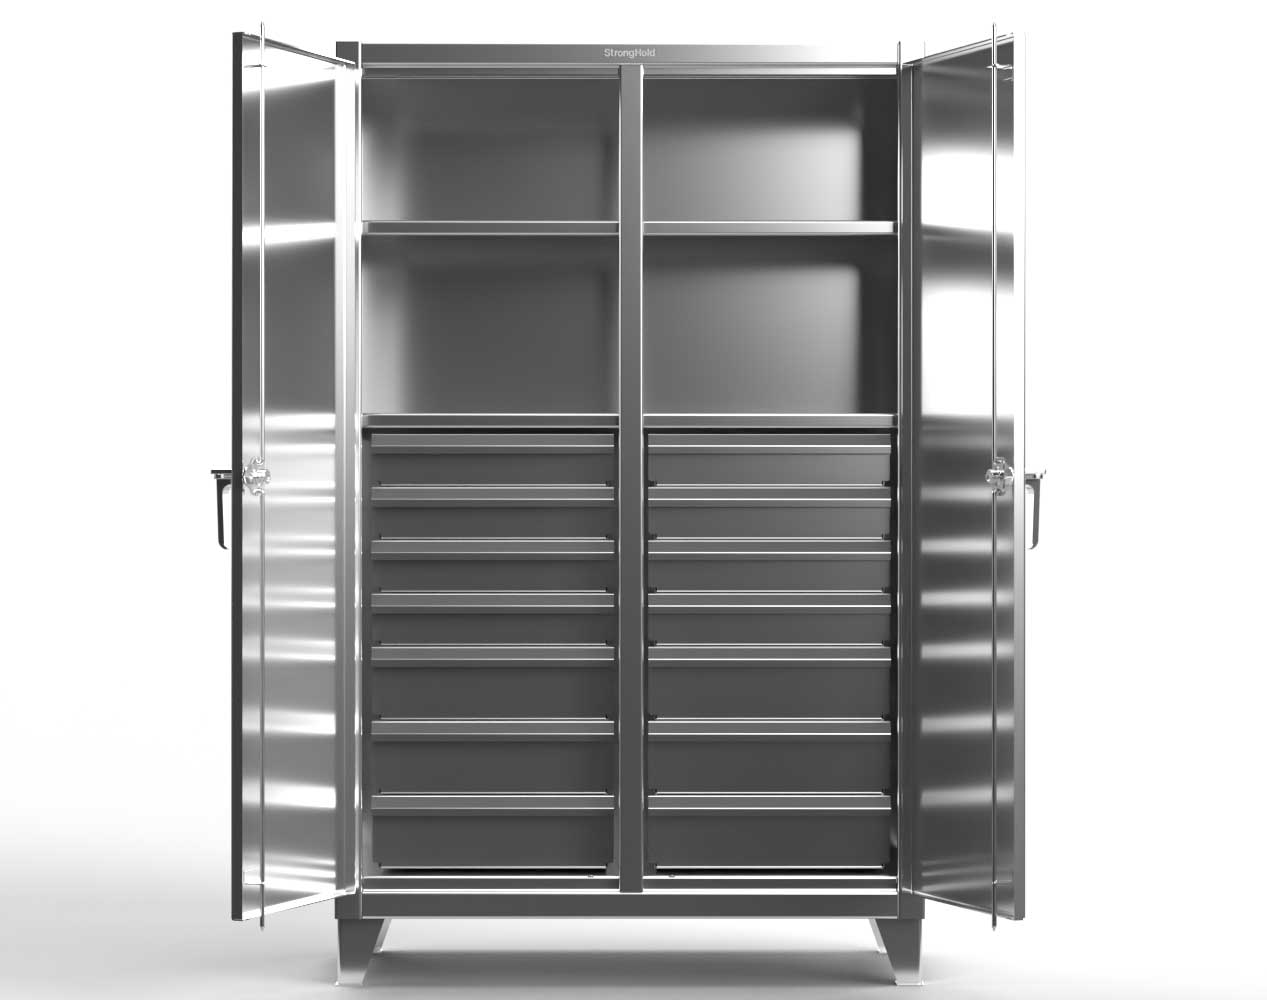 Extreme Duty 12 GA Stainless Steel Double Shift Cabinet with 14 Drawers, 4 Shelves – 72 In. W x 24 In. D x 78 In. H